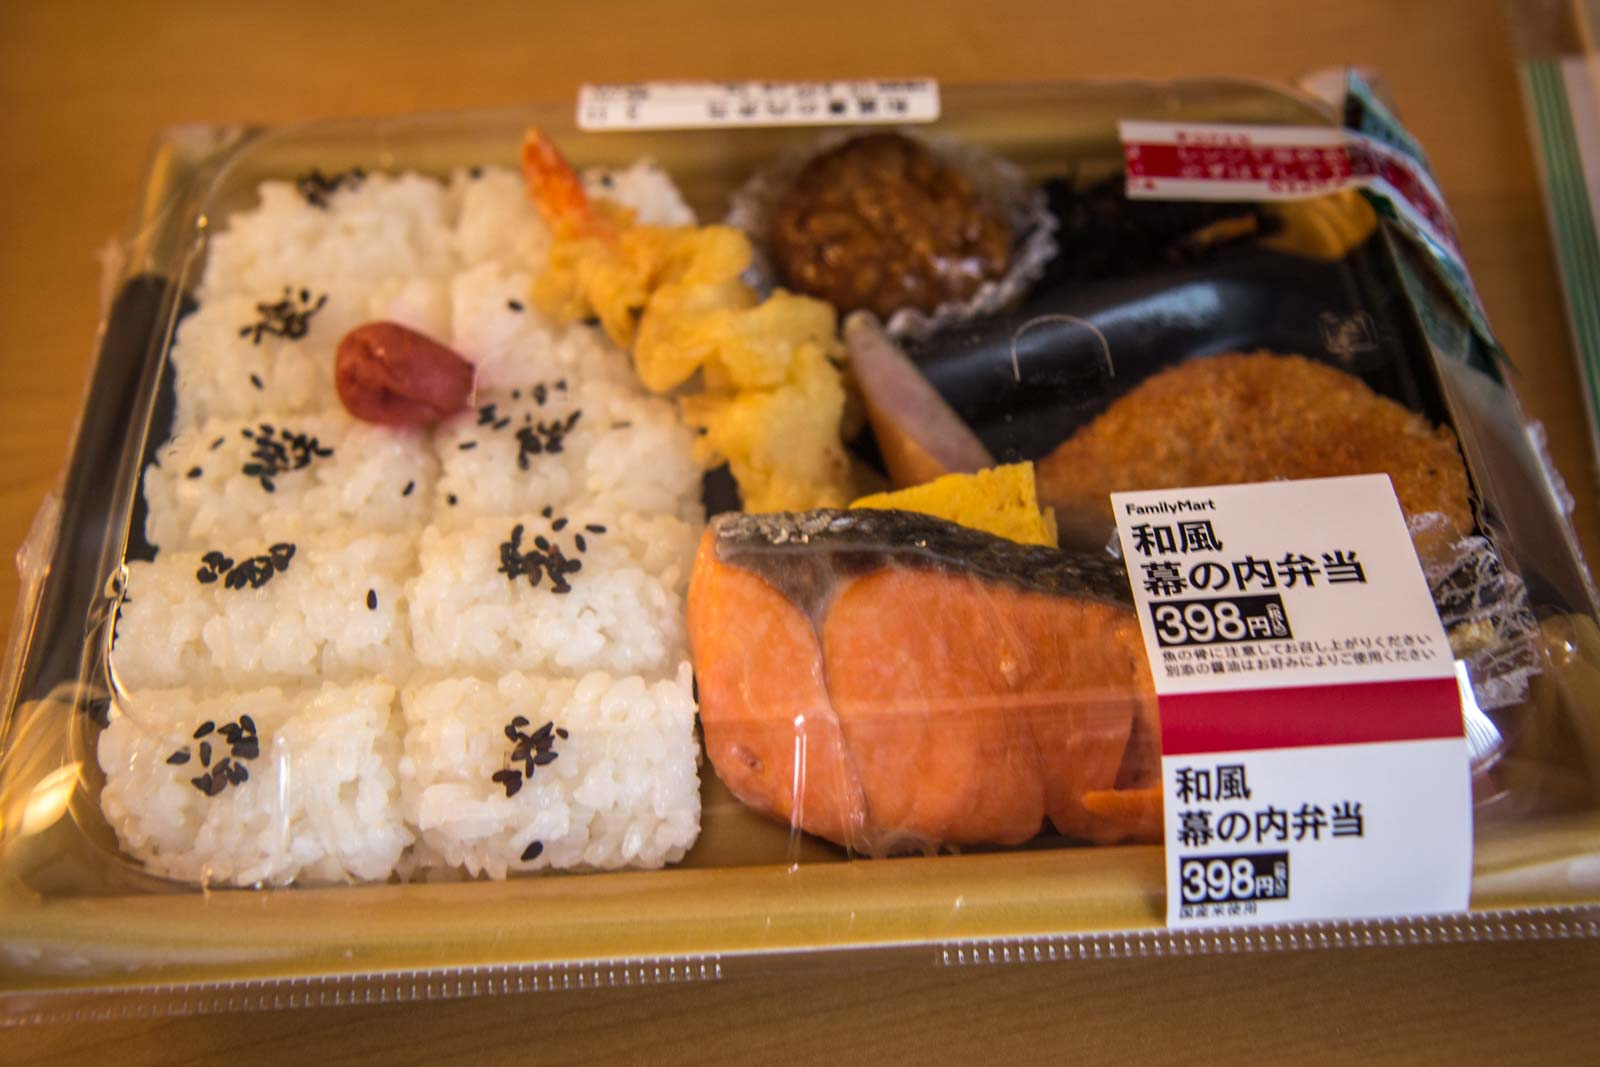 bento, japanese food, japanese dishes, boxed lunch in japan, rice and mixed foods